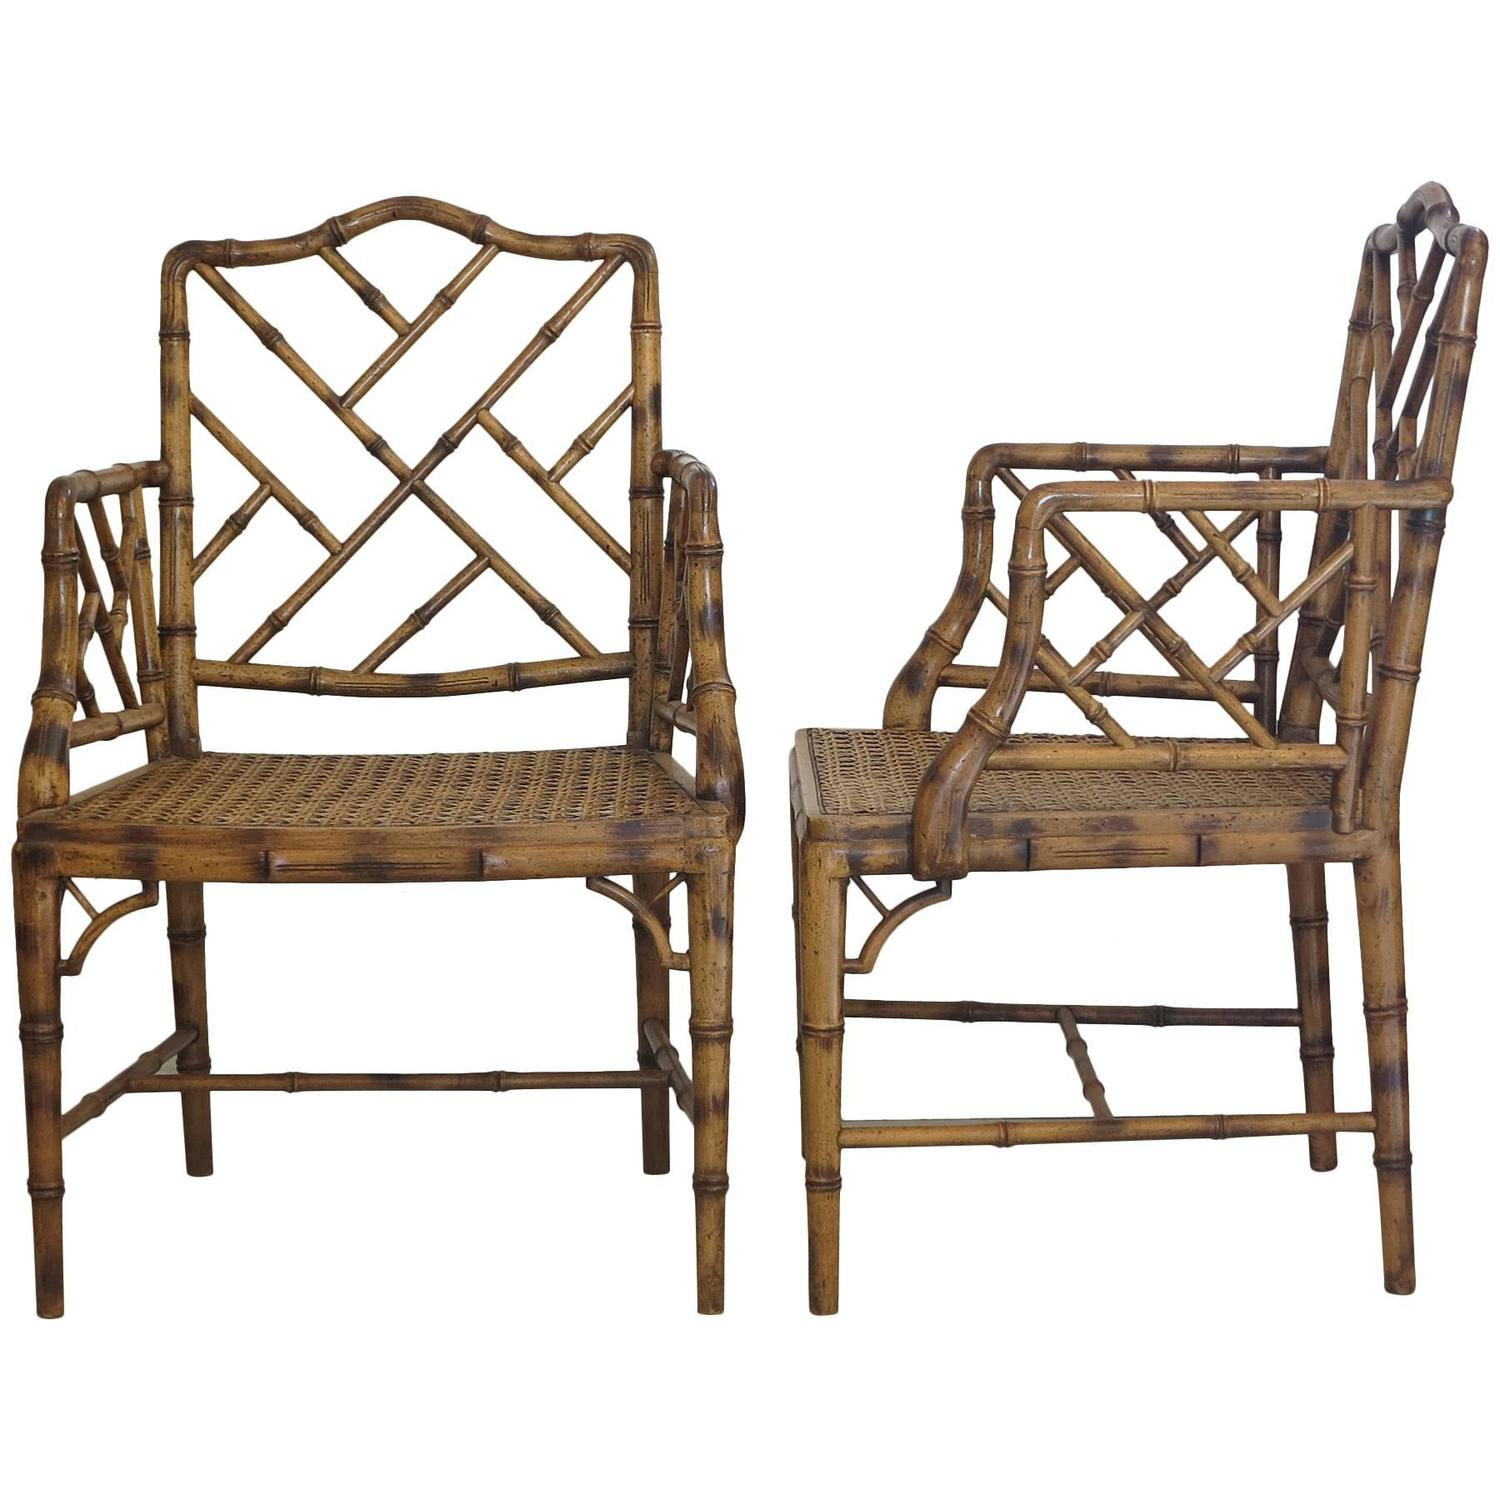 Two Chinese Chippendale Faux Bamboo Arm chairs 1980s at 1stdibs